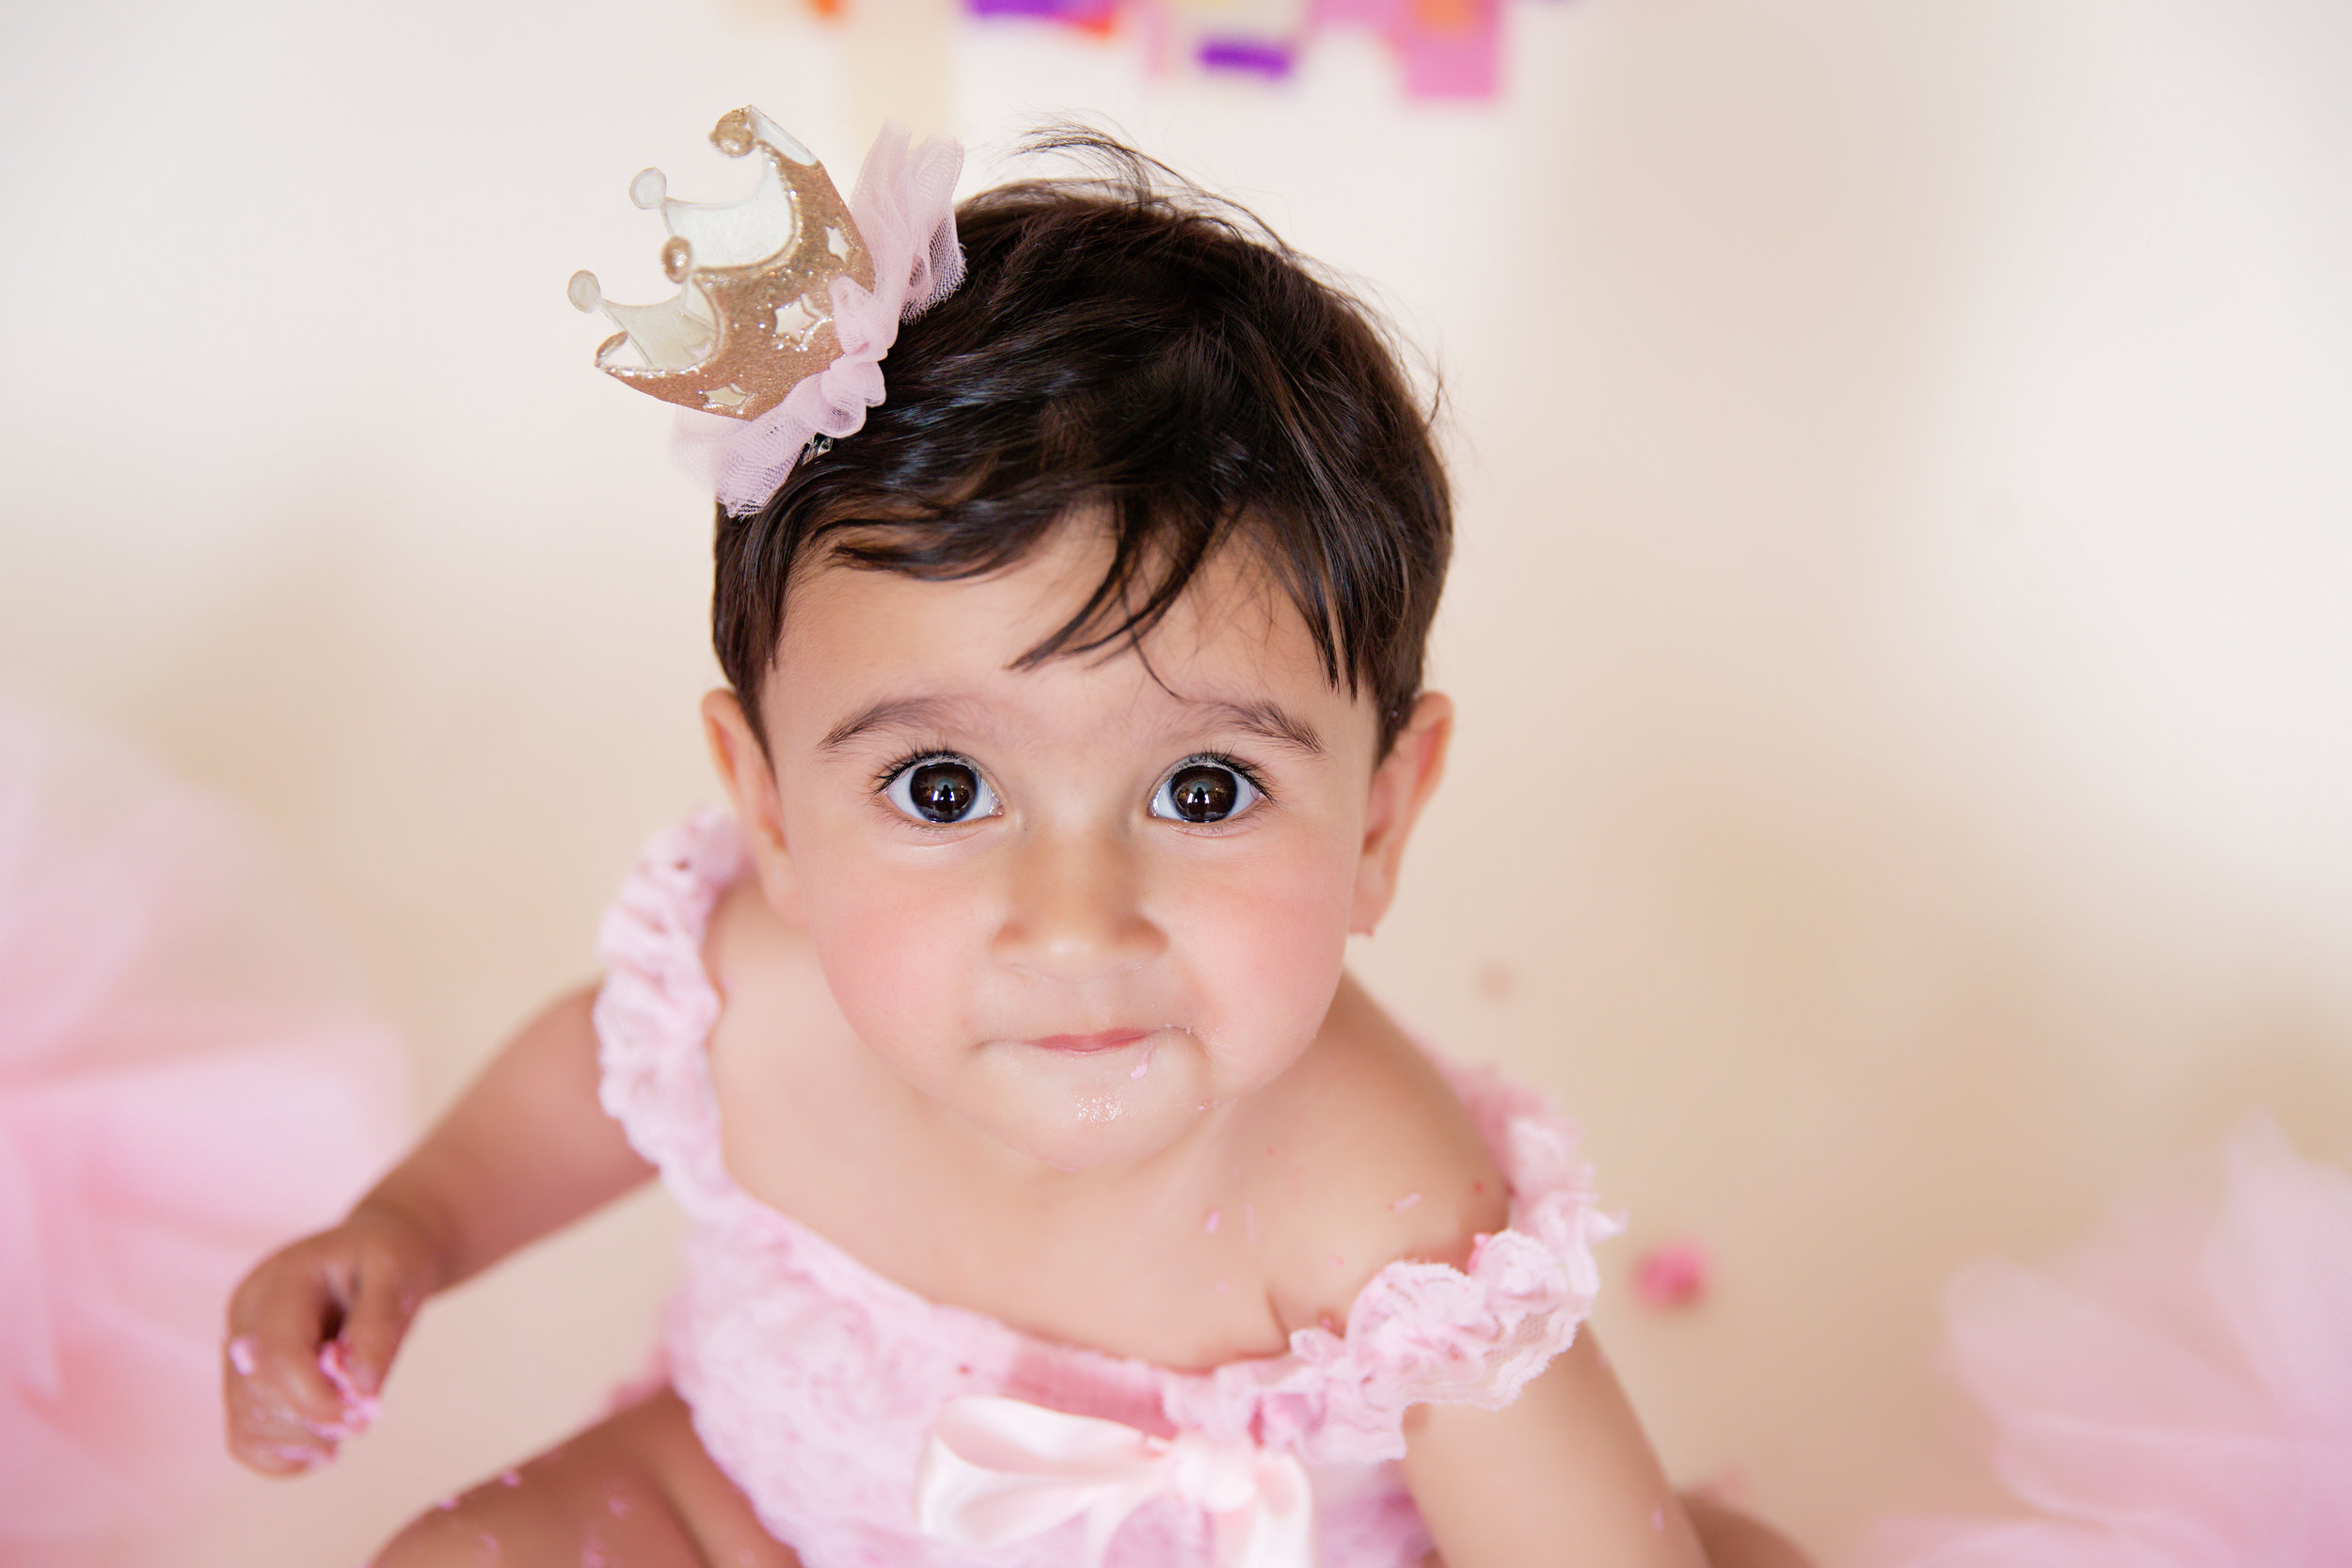 Baby with beautiful eyes looking straight at the camera. Cakesmash photoshoot. Calgary. Milashka Photography